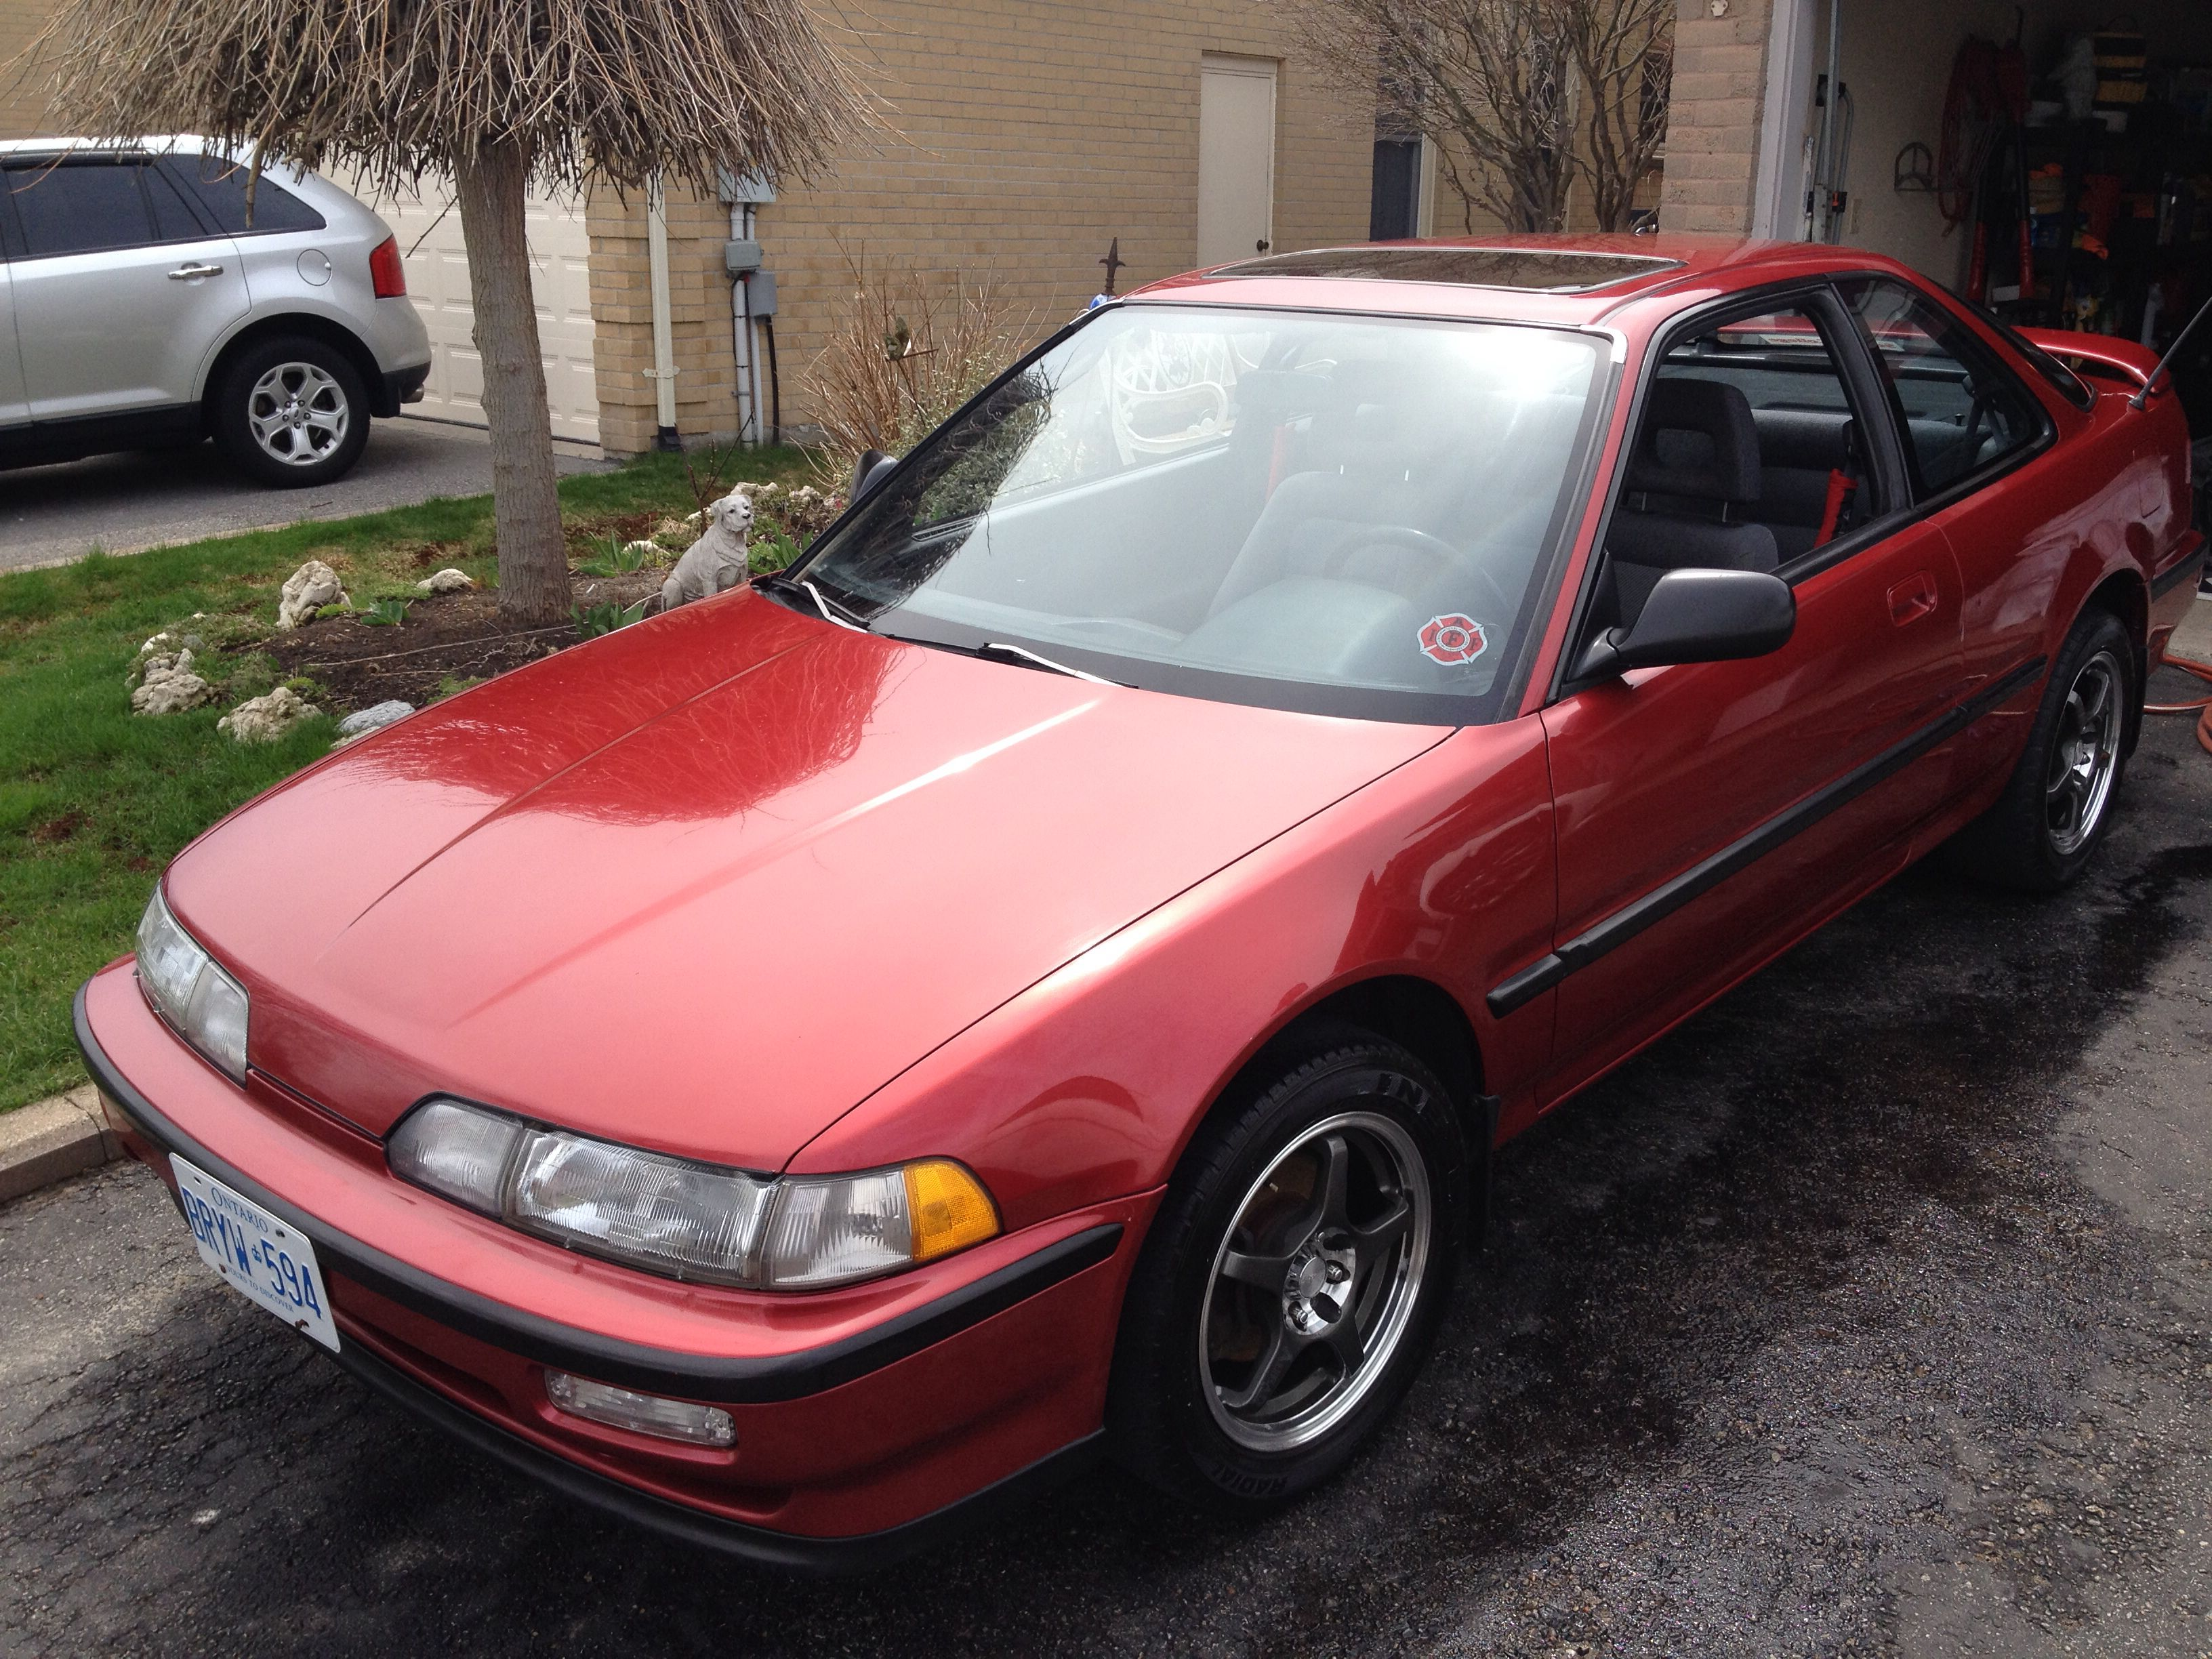 Pin By Norberto Aquino On In The Groove Jdm Acura Oldsmobile